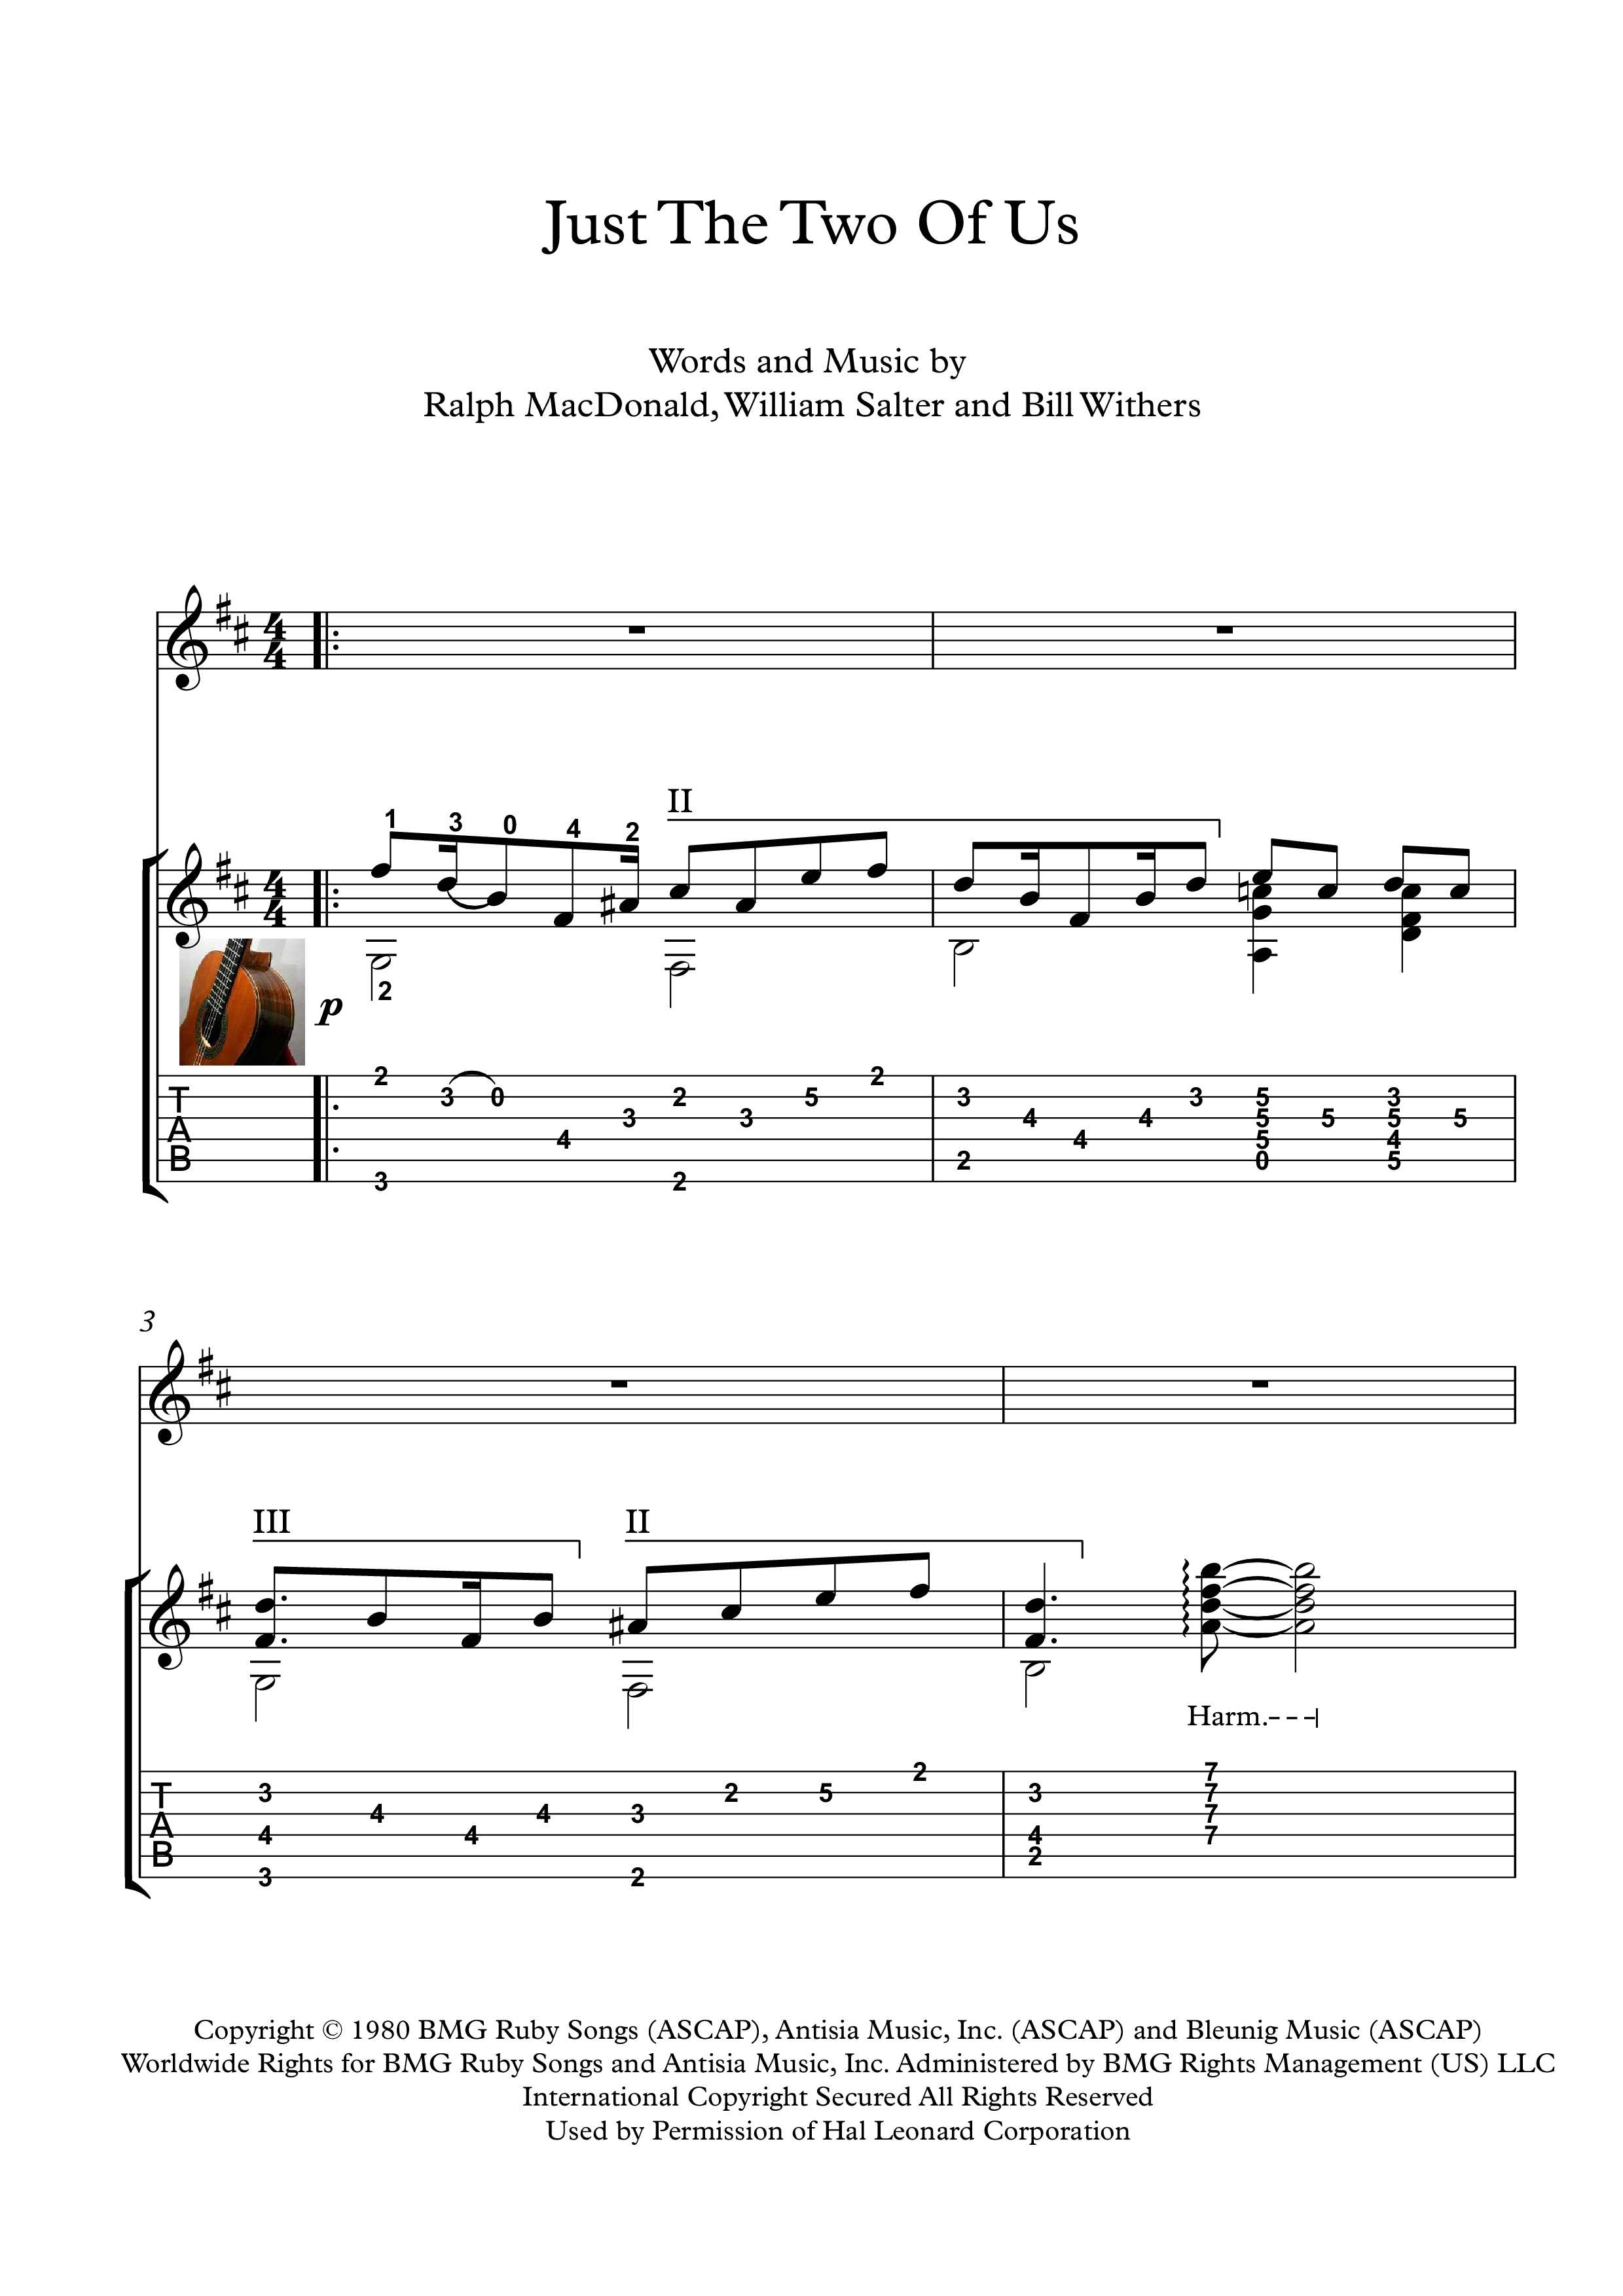 "Just the two of us guitar solo sheet music ""Just the Two of Us"" is a 1981  R&B single written by Bill Withers, William Salter and Ralph MacDonald."